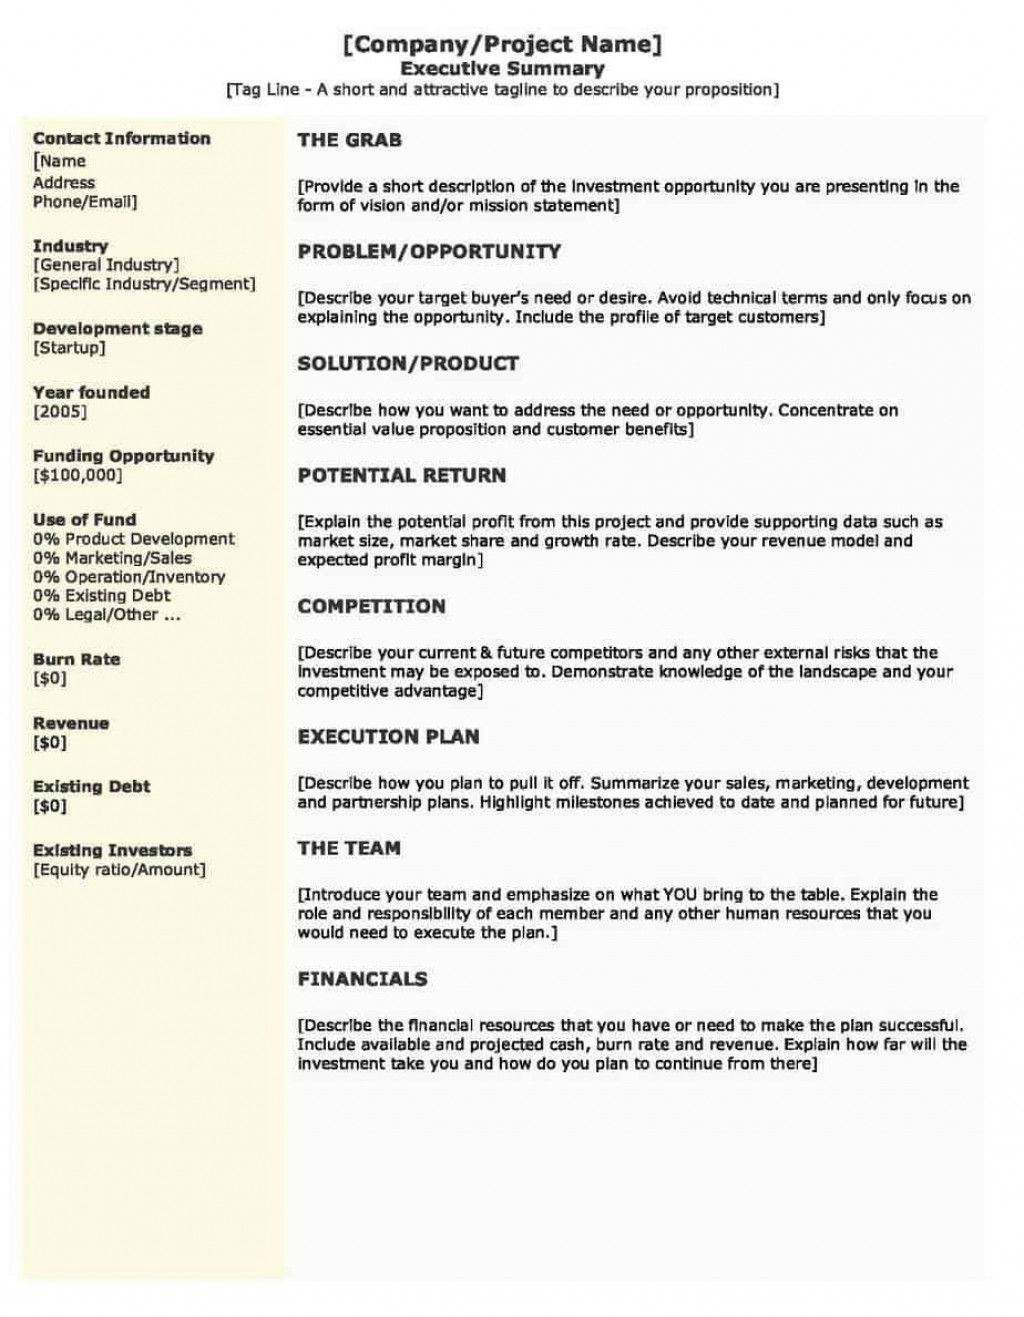 003 Archaicawful Executive Summary Report Word Template Design Large